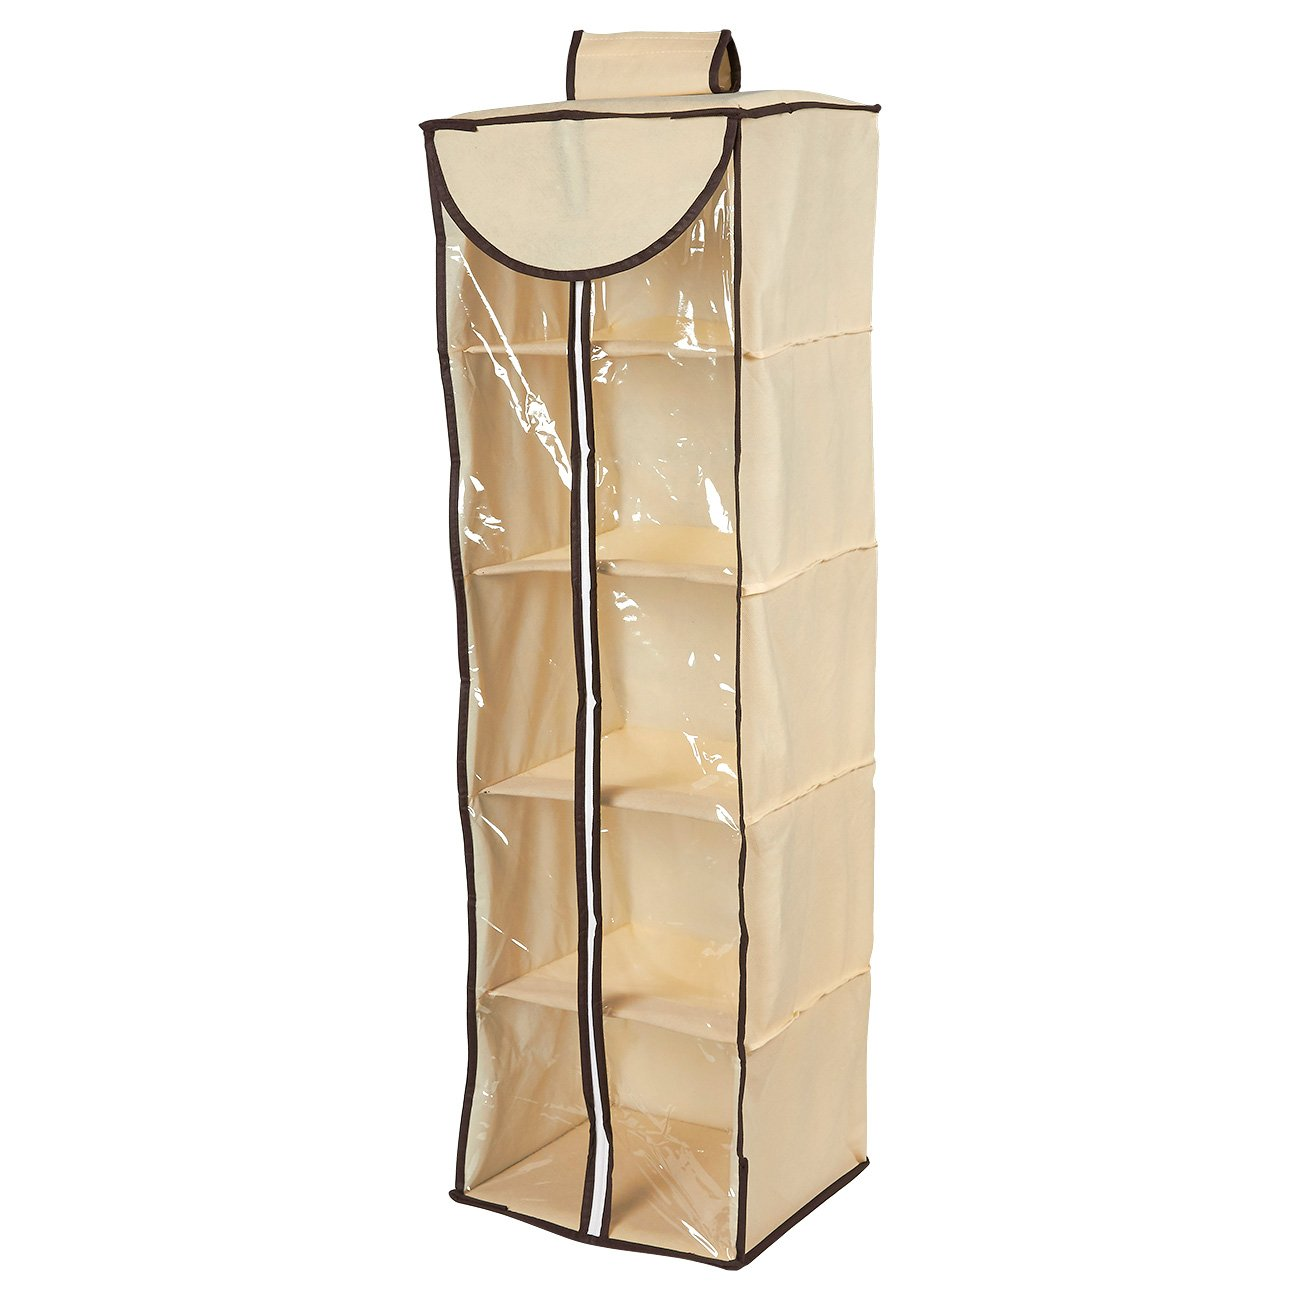 Juvale Hanging Closet Organizer - 5 Layers Storage Rack, Space Saver Drawers Cardboard Shelves Hook & Loop Strap Clothing, Shoes, Accessories, Beige, 40 x 12.25 x 12.25 inches